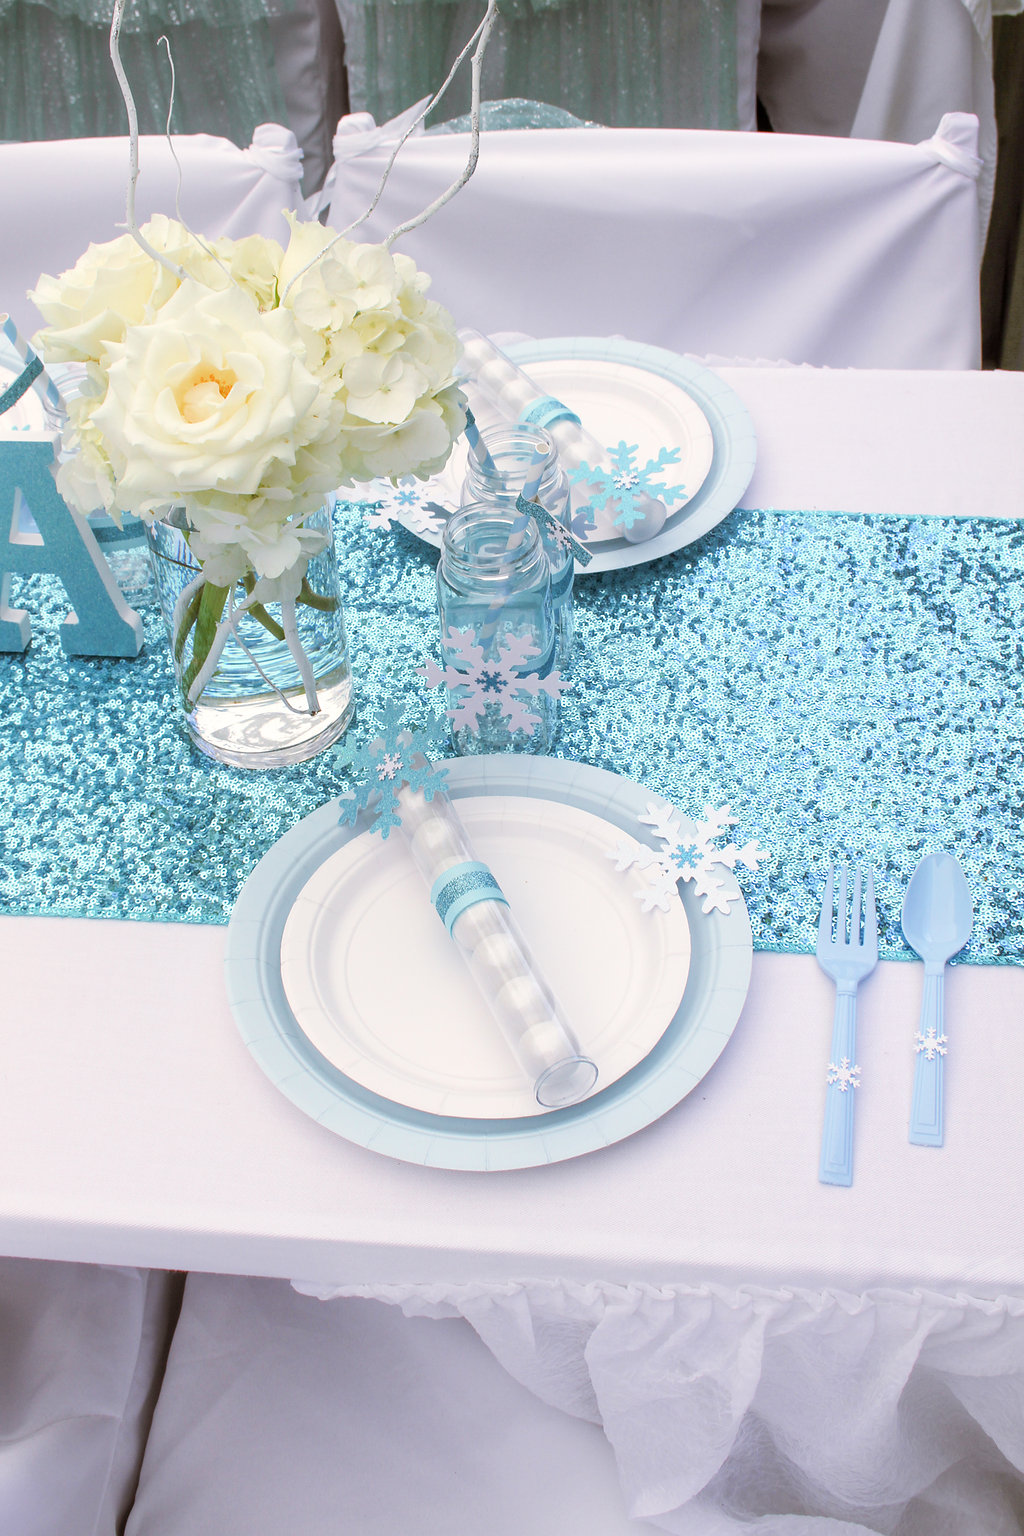 sweetly chic events & design frozen party place setting